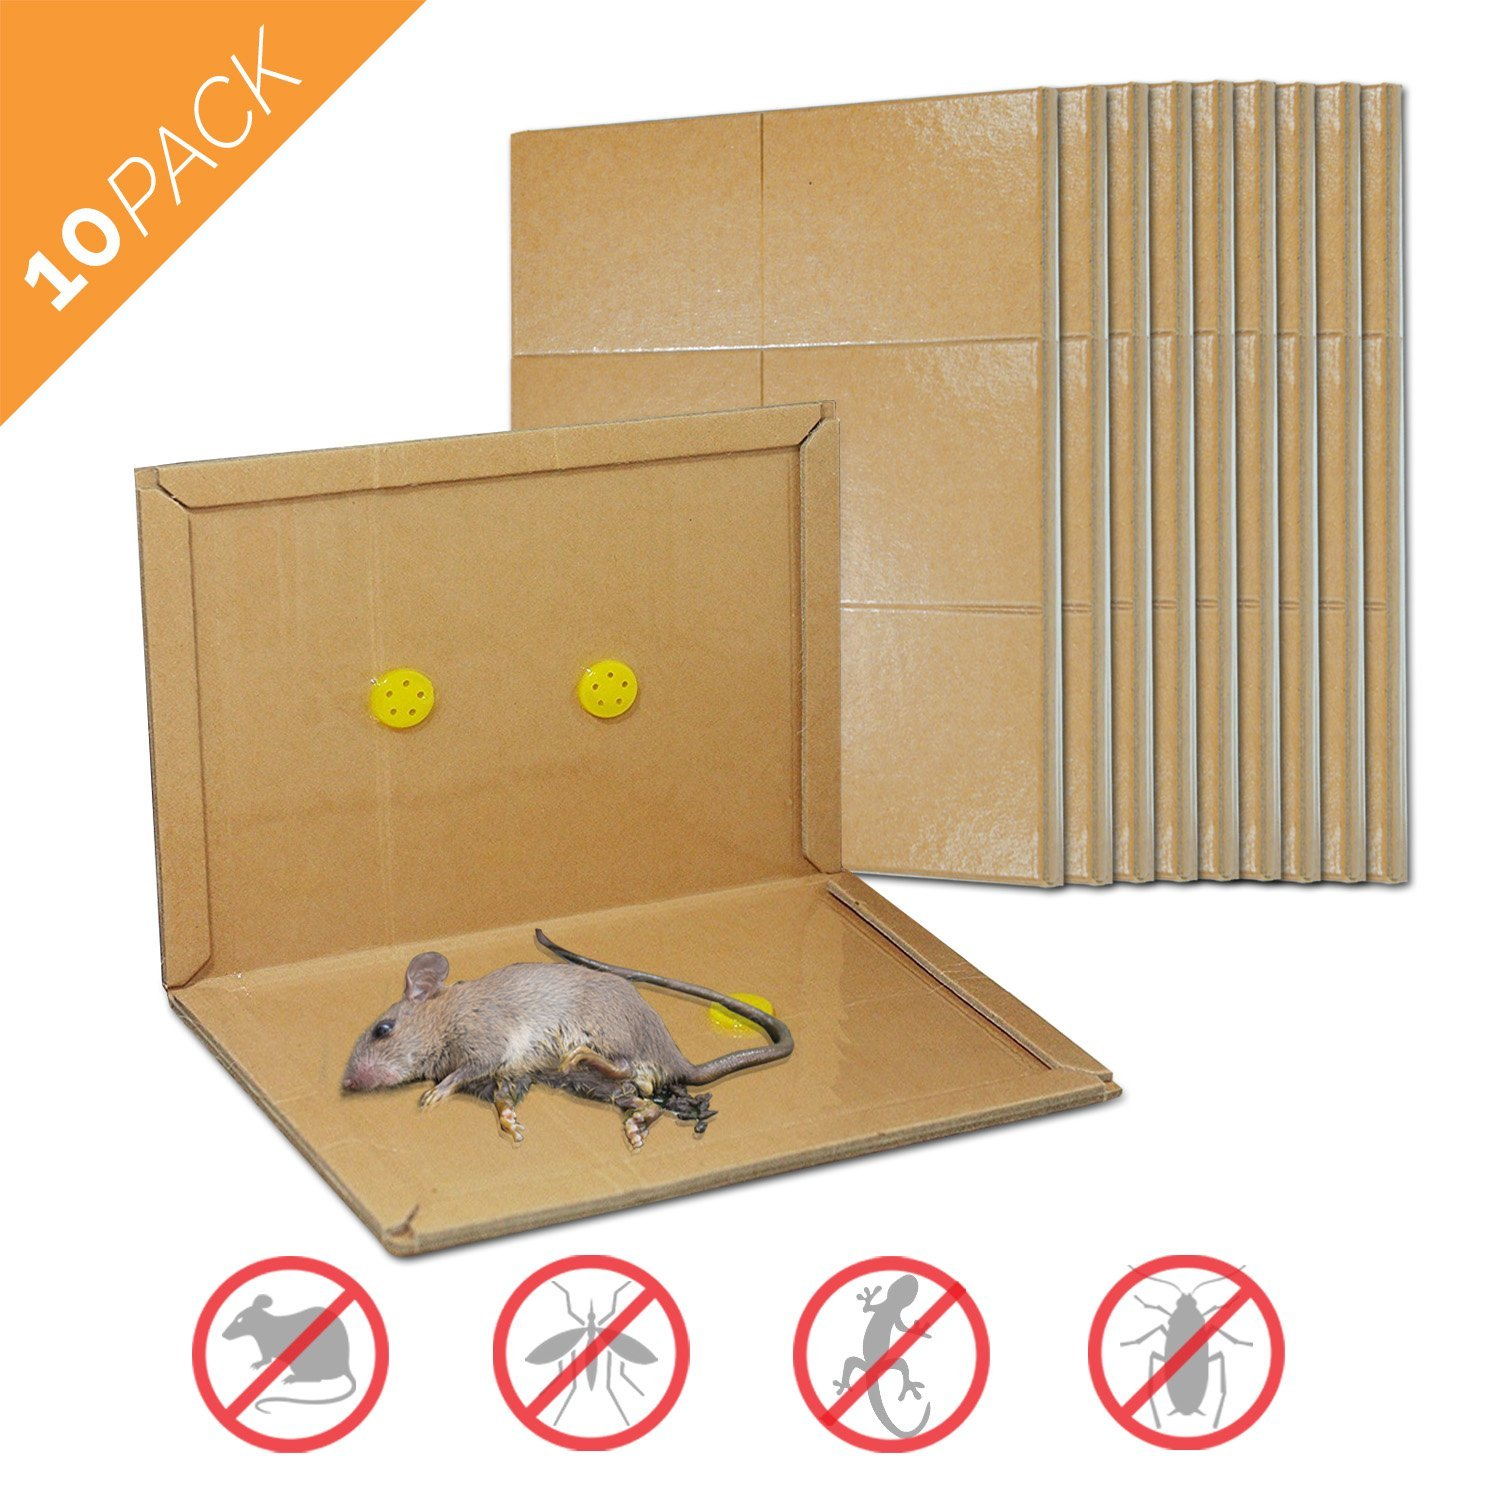 Mouse Glue Trap, Rat Glue Traps, Strongly Adhesive & Extra Large, Best Peanut Butter Scented Mouse Traps Glue Board for Mice & Rodent &Pests & Bug & Ant & Spider - 10 Pack